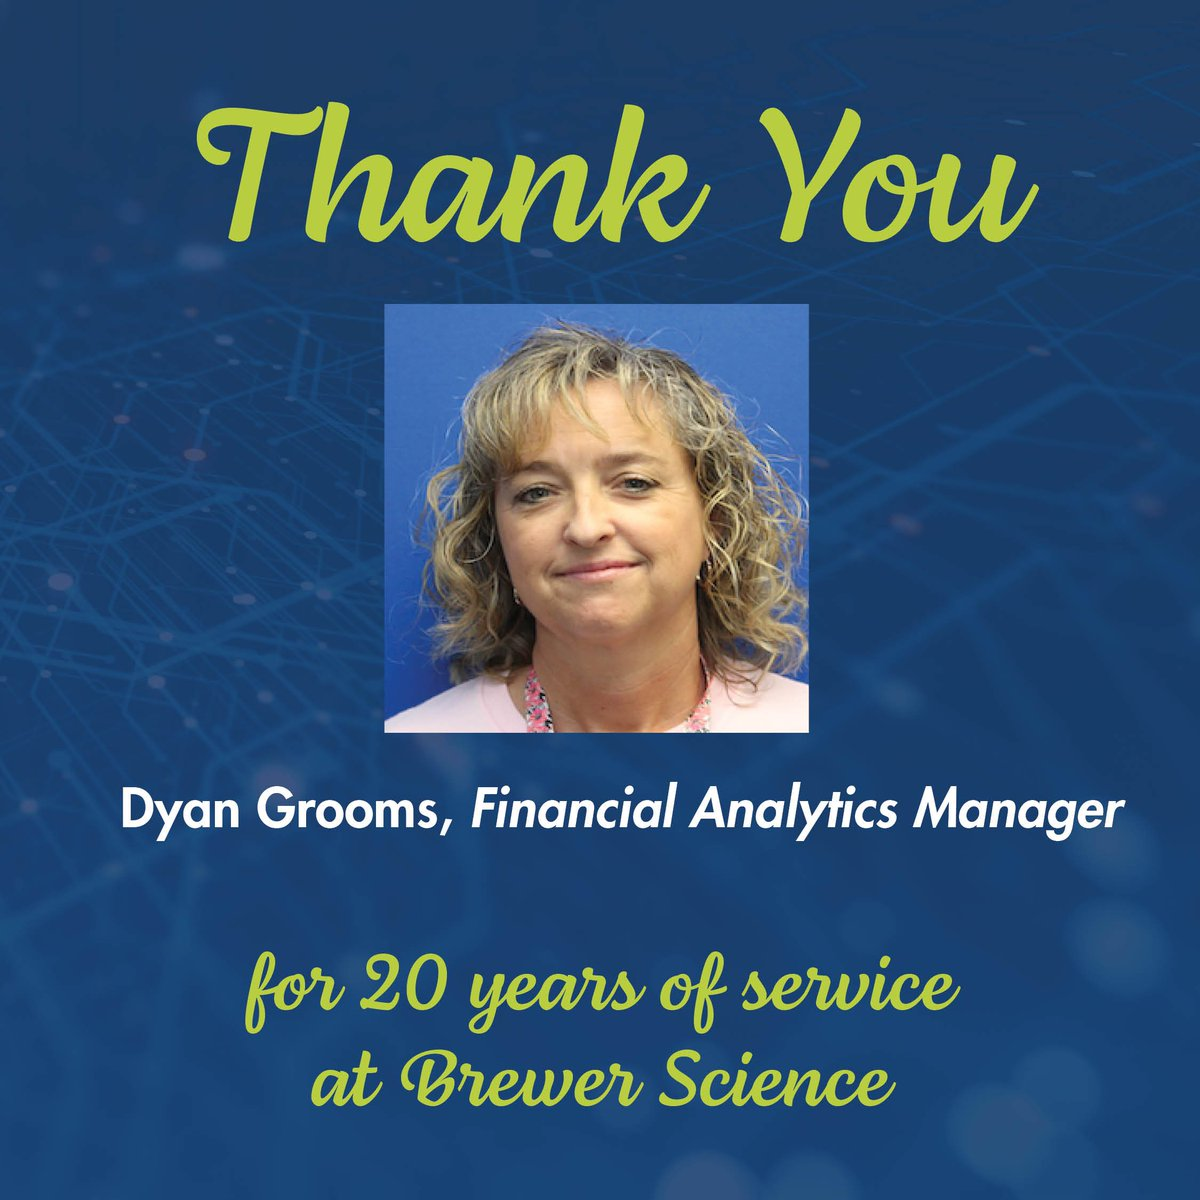 test Twitter Media - Today, we would like to congratulate Dyan Grooms for 20 years of service at Brewer Science. Thank you, Dyan, for your dedication and hard work. . . . #EmployeeAppreciation #EmployeeAnniversary #WorkAnniversary #dedication #hardwork #appreciation #congratulation https://t.co/c37NiLTpZD